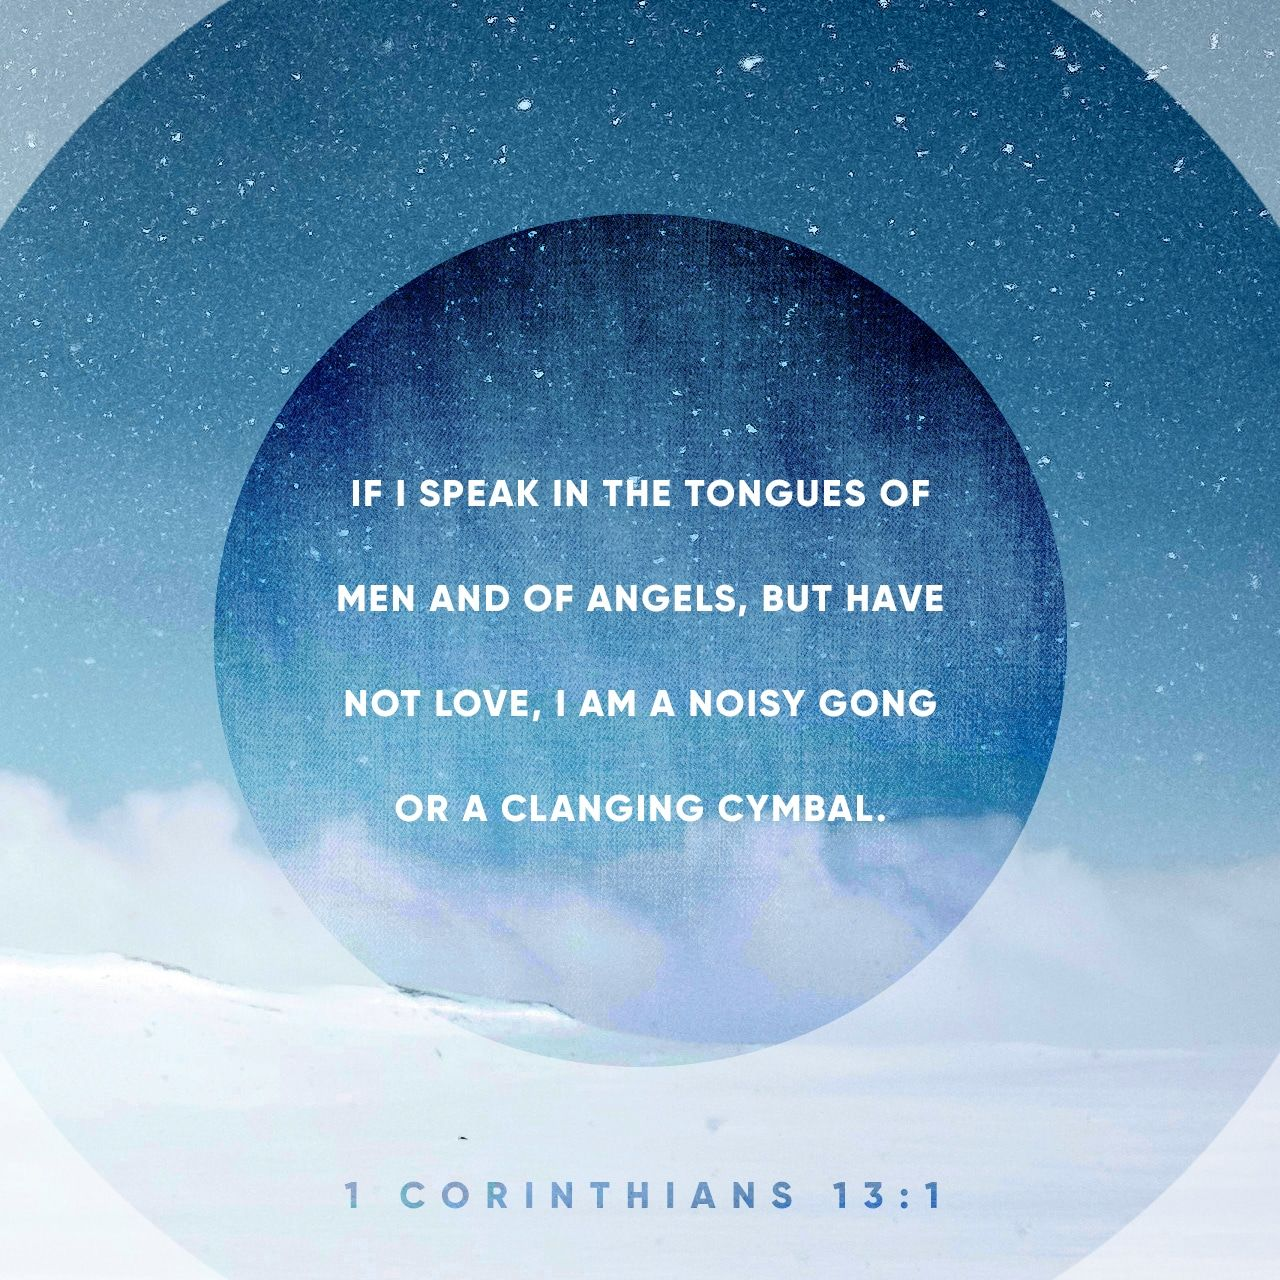 If i speak in the tongues of men and of angels but have